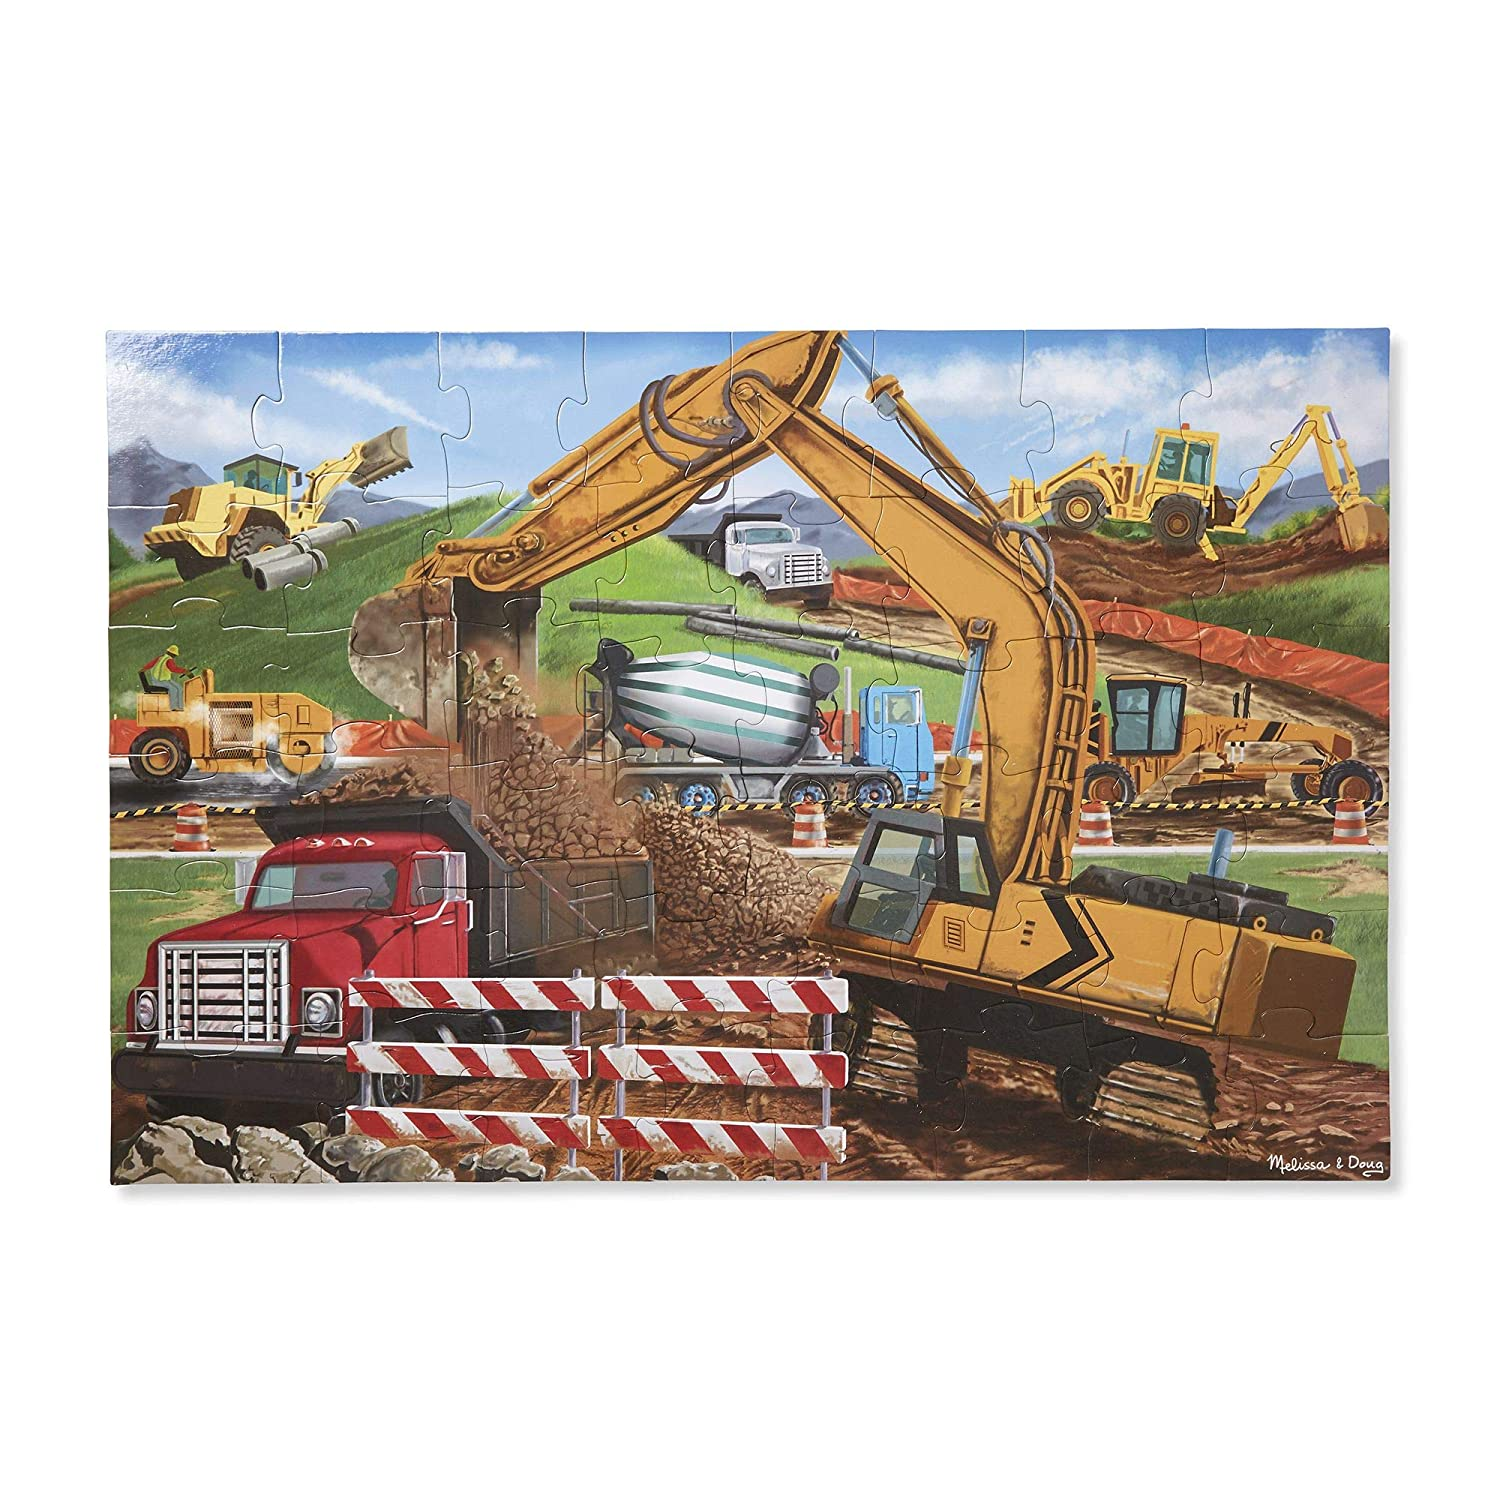 Melissa Doug Building Site Jumbo Jigsaw Floor Puzzle 48 pcs 2 x 3 feet long